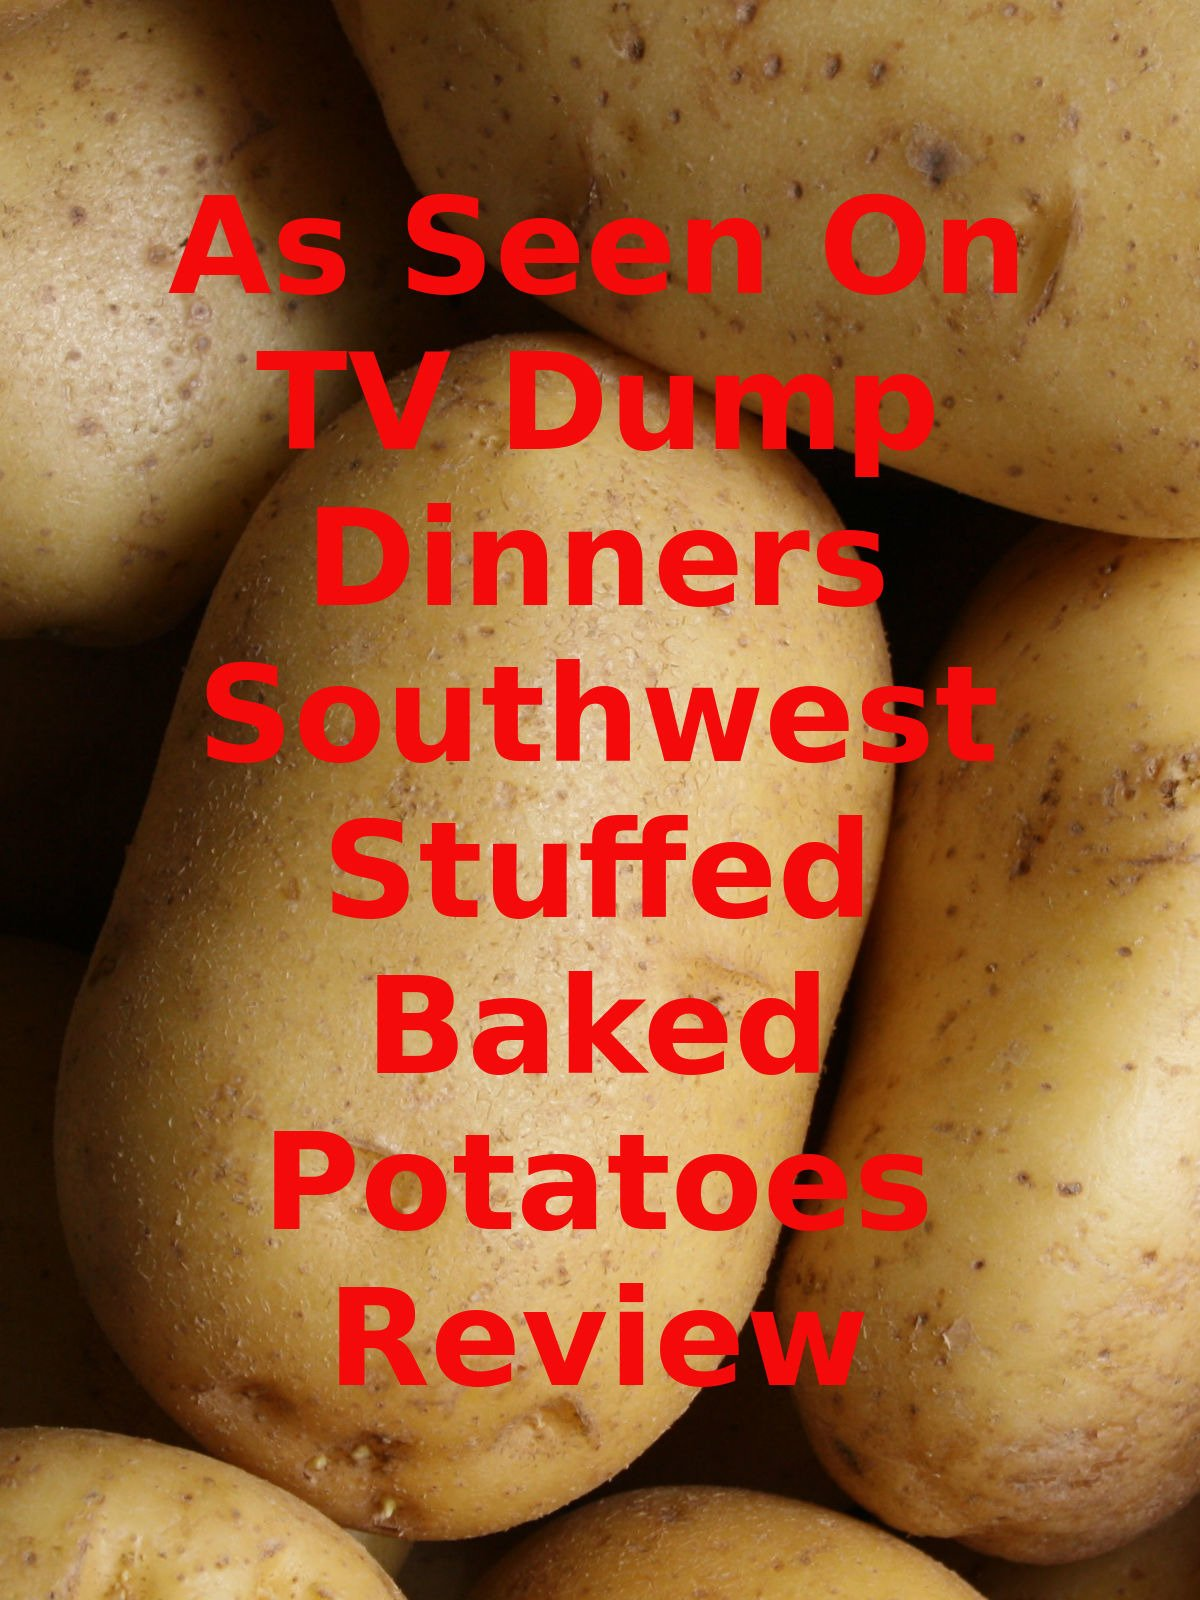 Review: As Seen On TV Dump Dinners Southwest Stuffed Baked Potatoes Review on Amazon Prime Instant Video UK